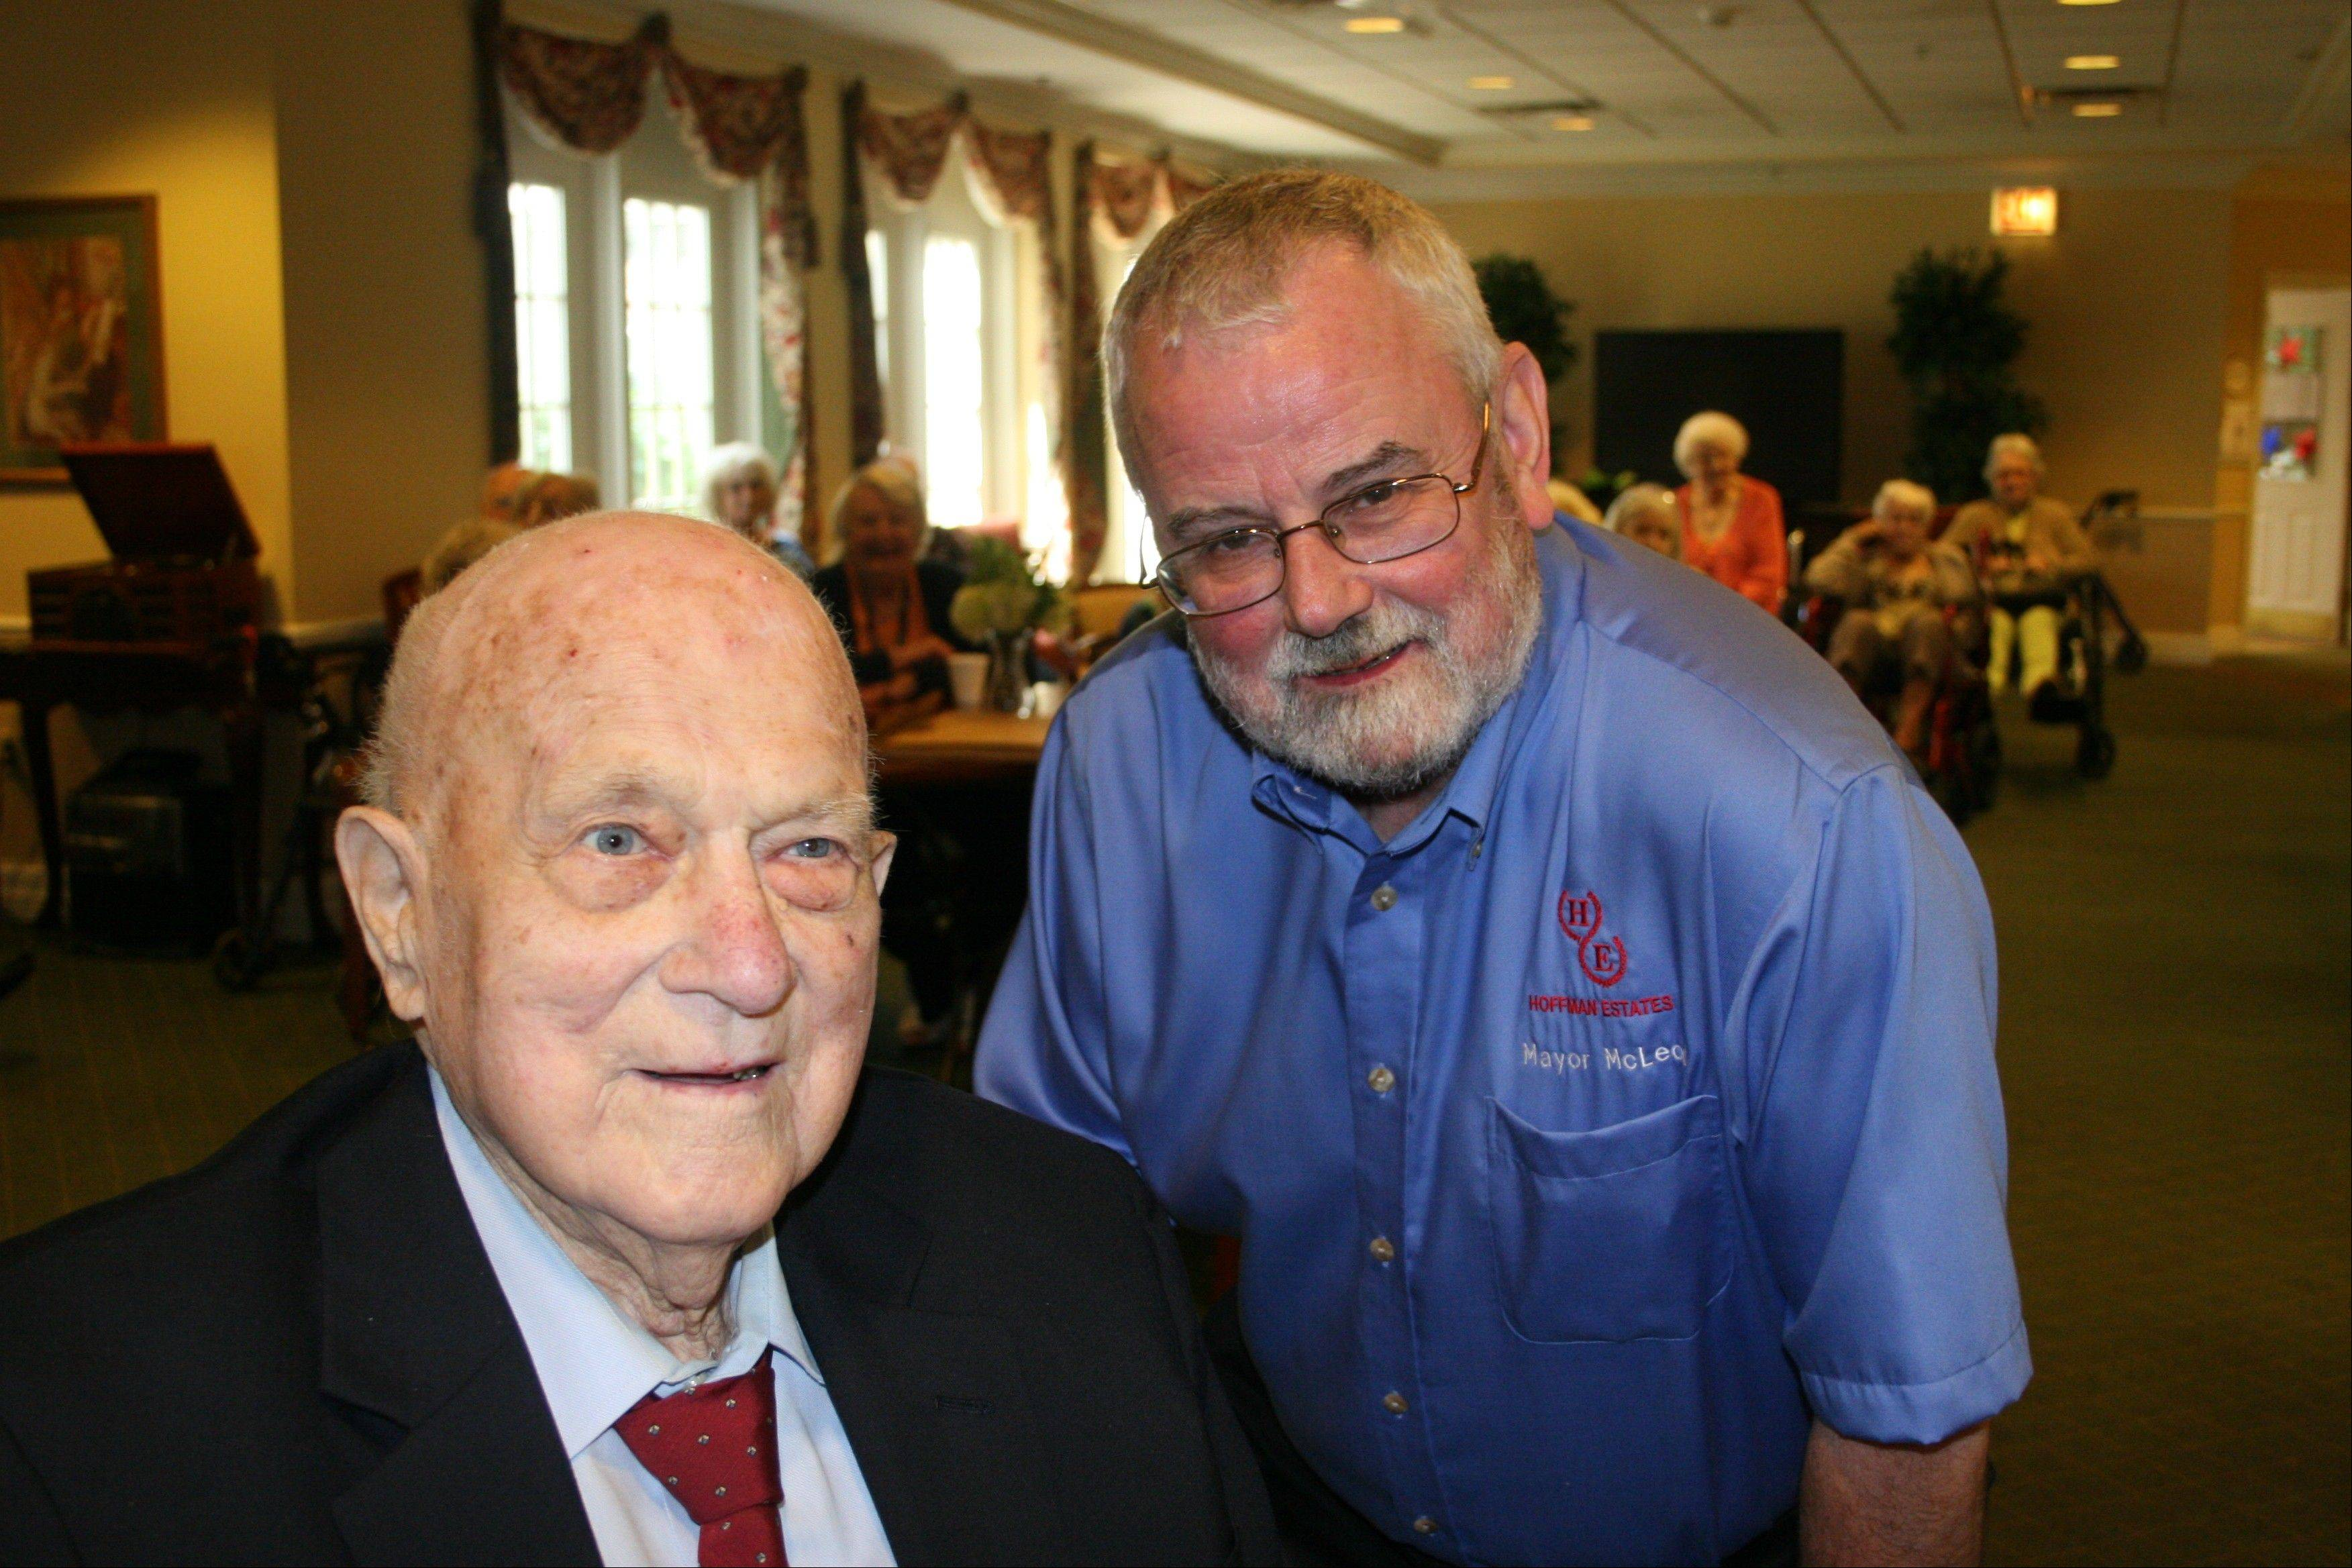 Hoffman Estates Mayor Bill McLeod was among the guests at Frank Kania's 100th birthday party.